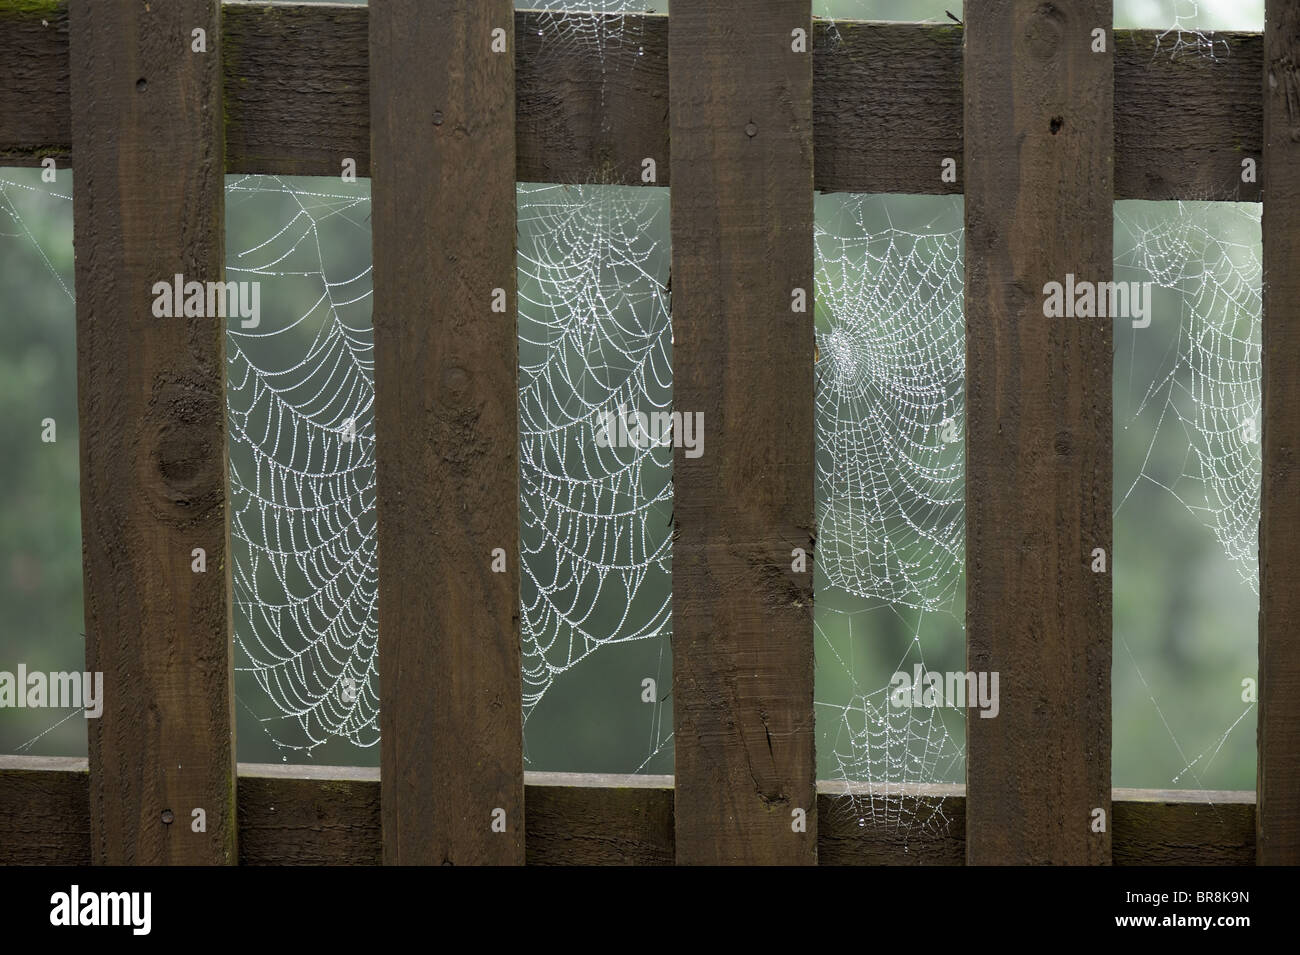 Garden spiders web (Araneus diadematus) on a wooden picket fence on a misty morning - Stock Image